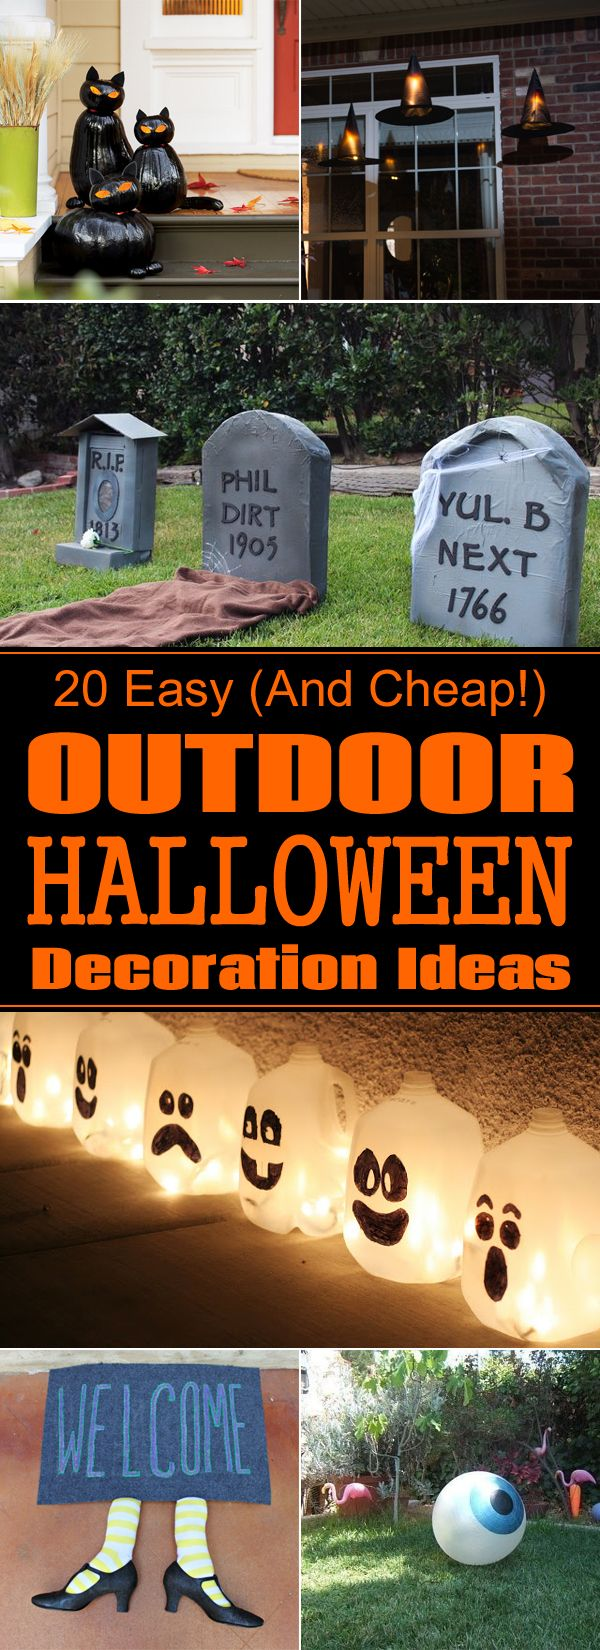 Easy homemade halloween decorations - 20 Easy And Cheap Diy Outdoor Halloween Decoration Ideas